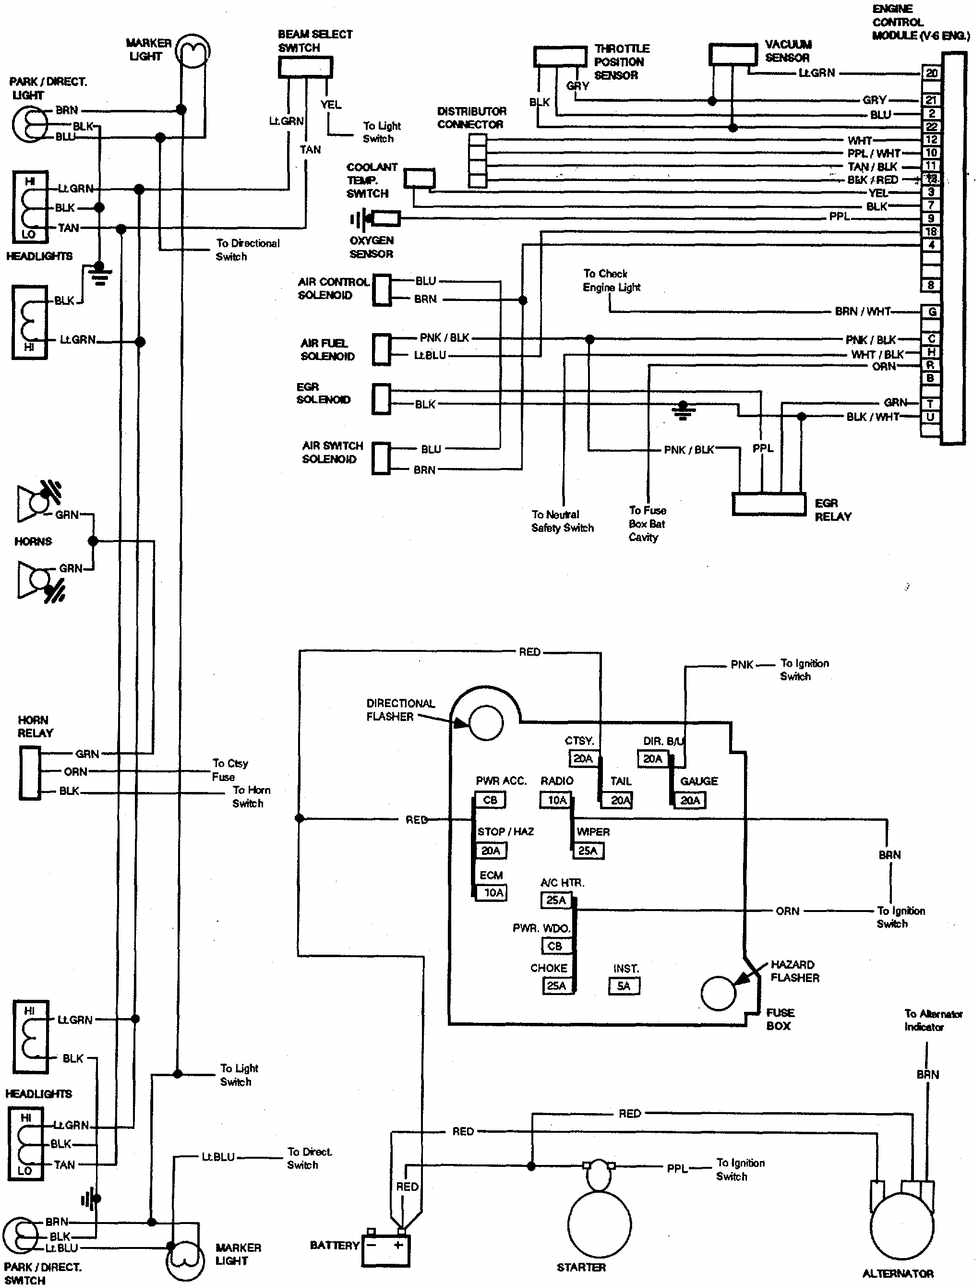 Chevrolet V8 Trucks 1981 1987 on 81 caprice wiring diagram